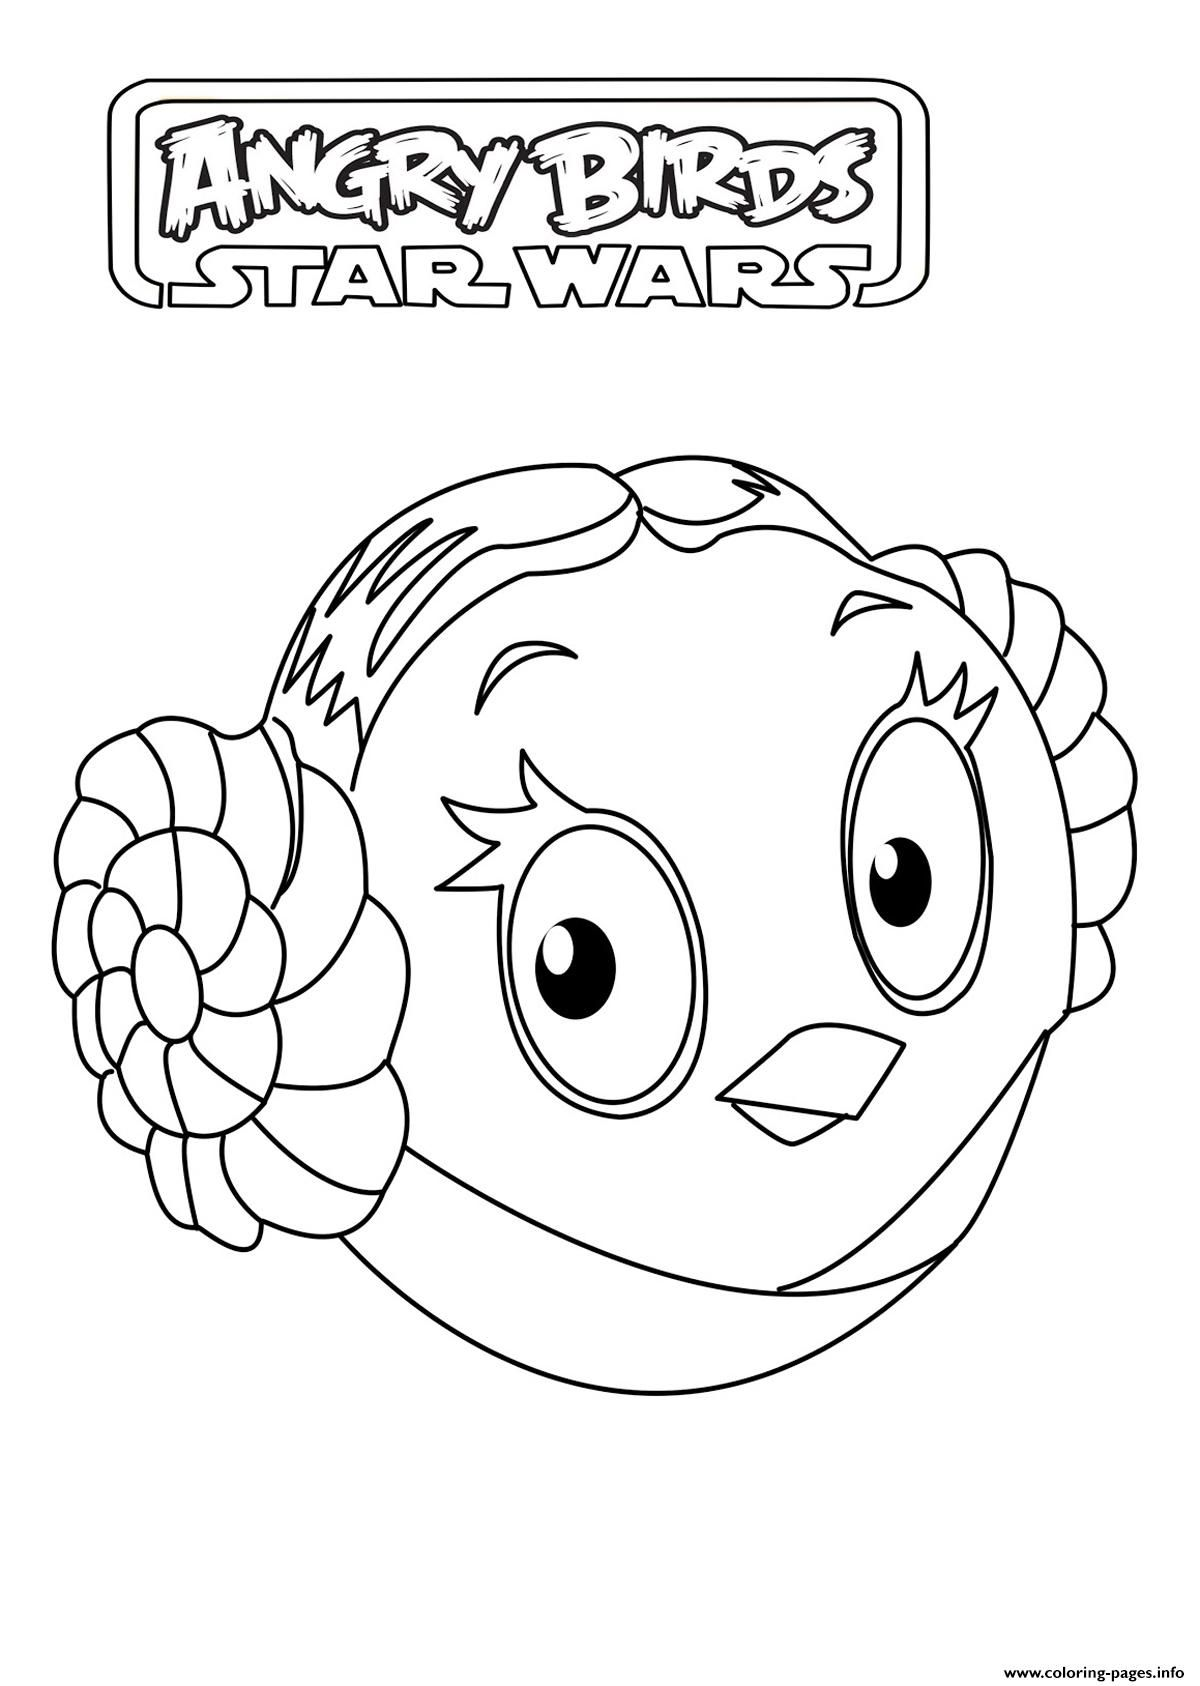 Print Kids Angry Birds Star Wars Leia Organa Coloring Pages